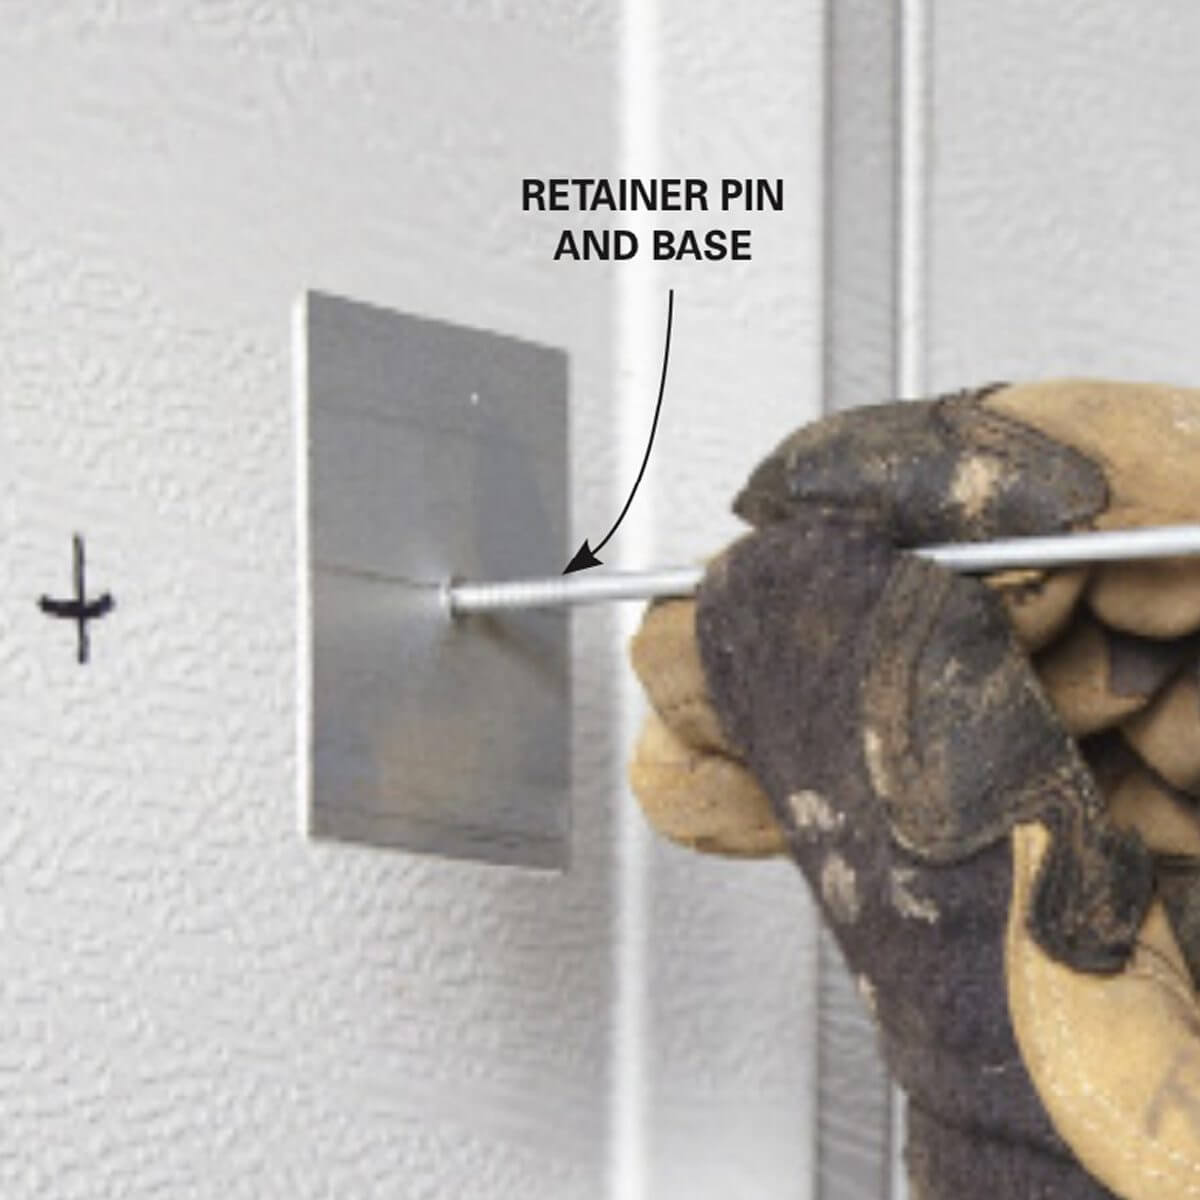 STEP BY STEP HOW TO INSULATE A GARAGE DOOR